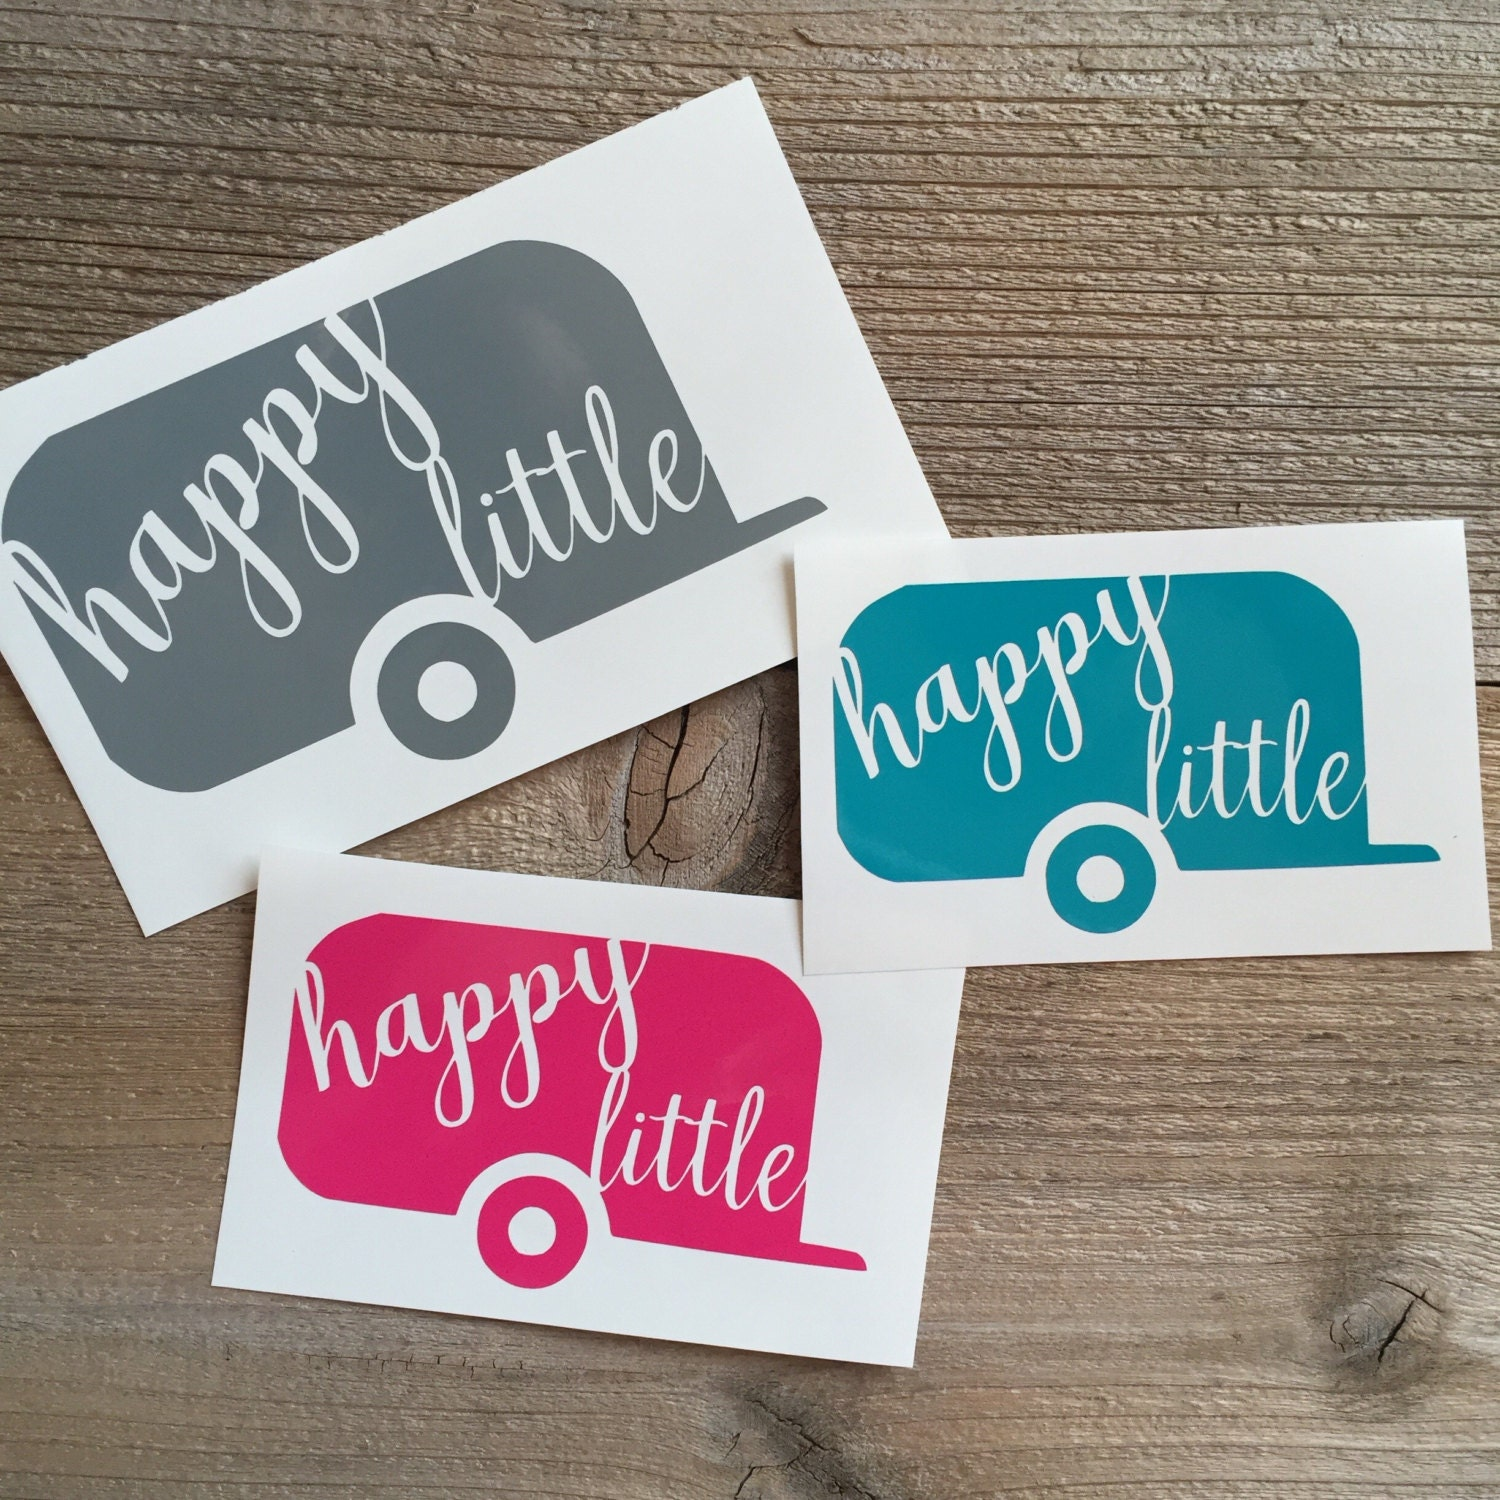 Happy little camper decal, phone decal, car decal, cup ...